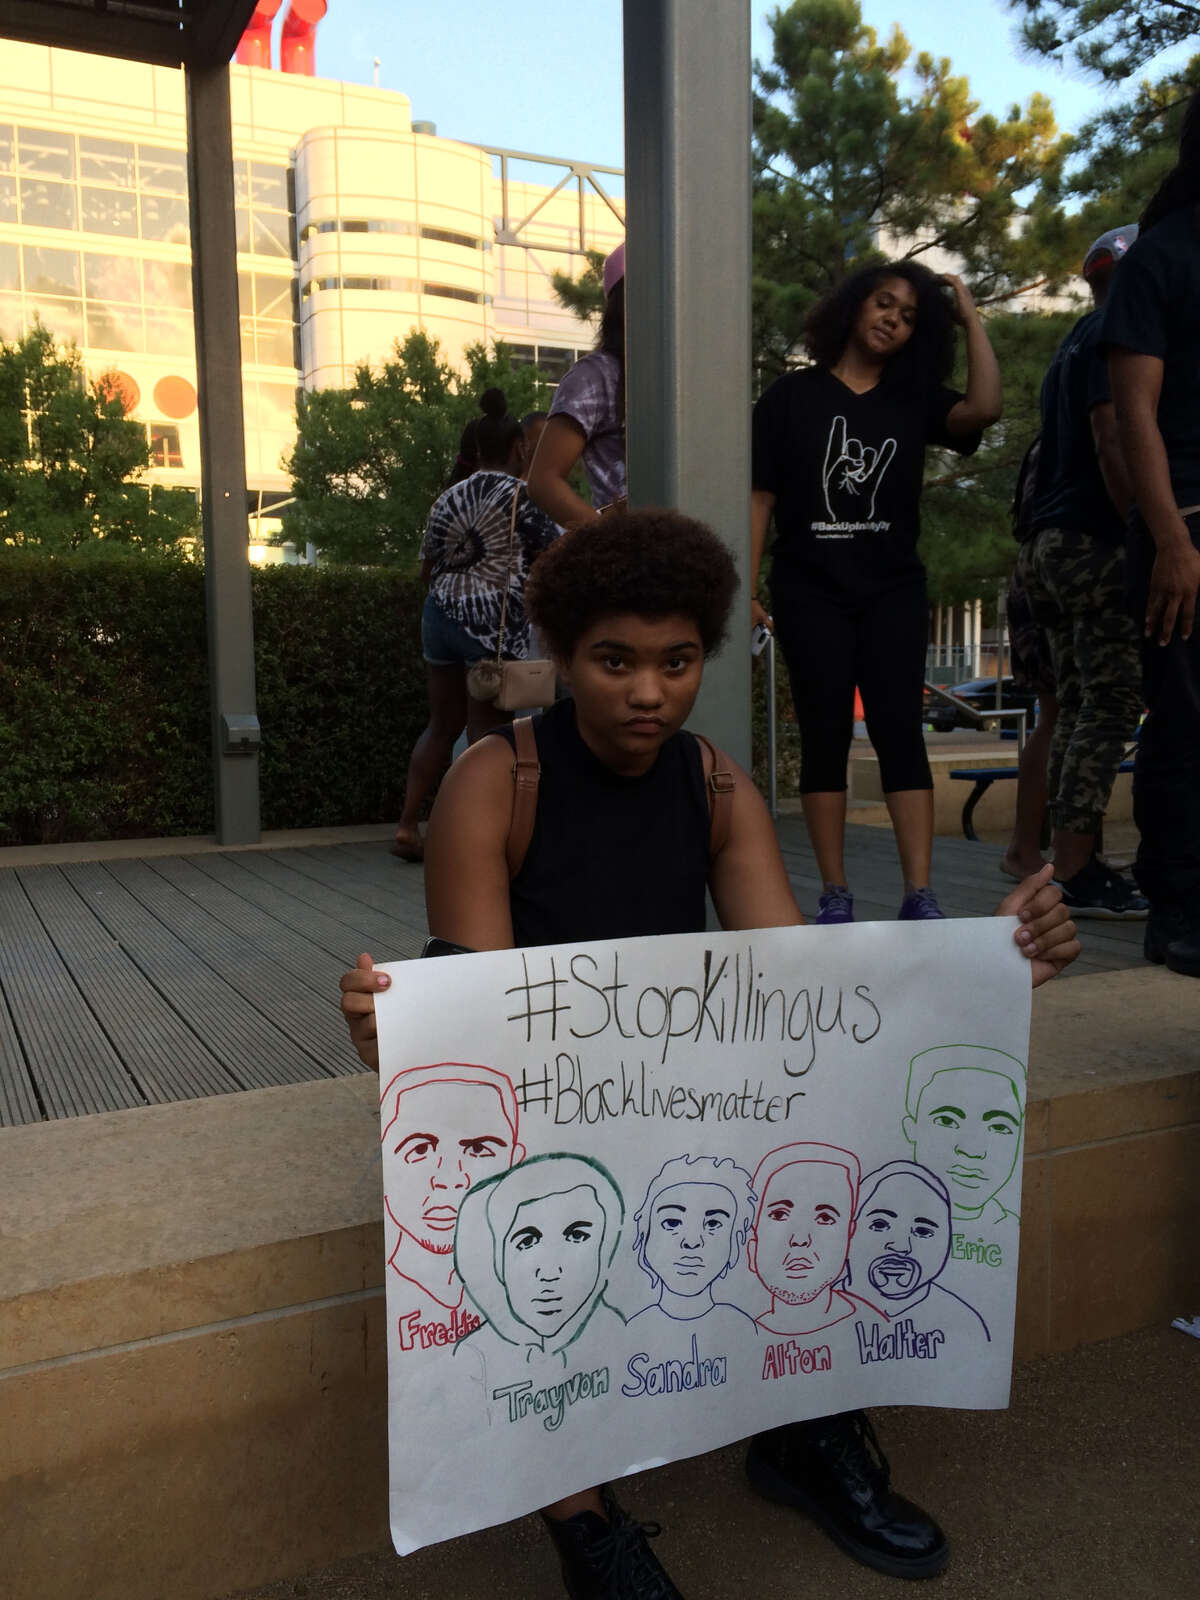 At the Discovery Green event, Angelica McGinnis, 17, shows a sign she drew that includes figures central to the Black Lives Matter movement protesting police shootings of minorities. Of the gathering, she said,